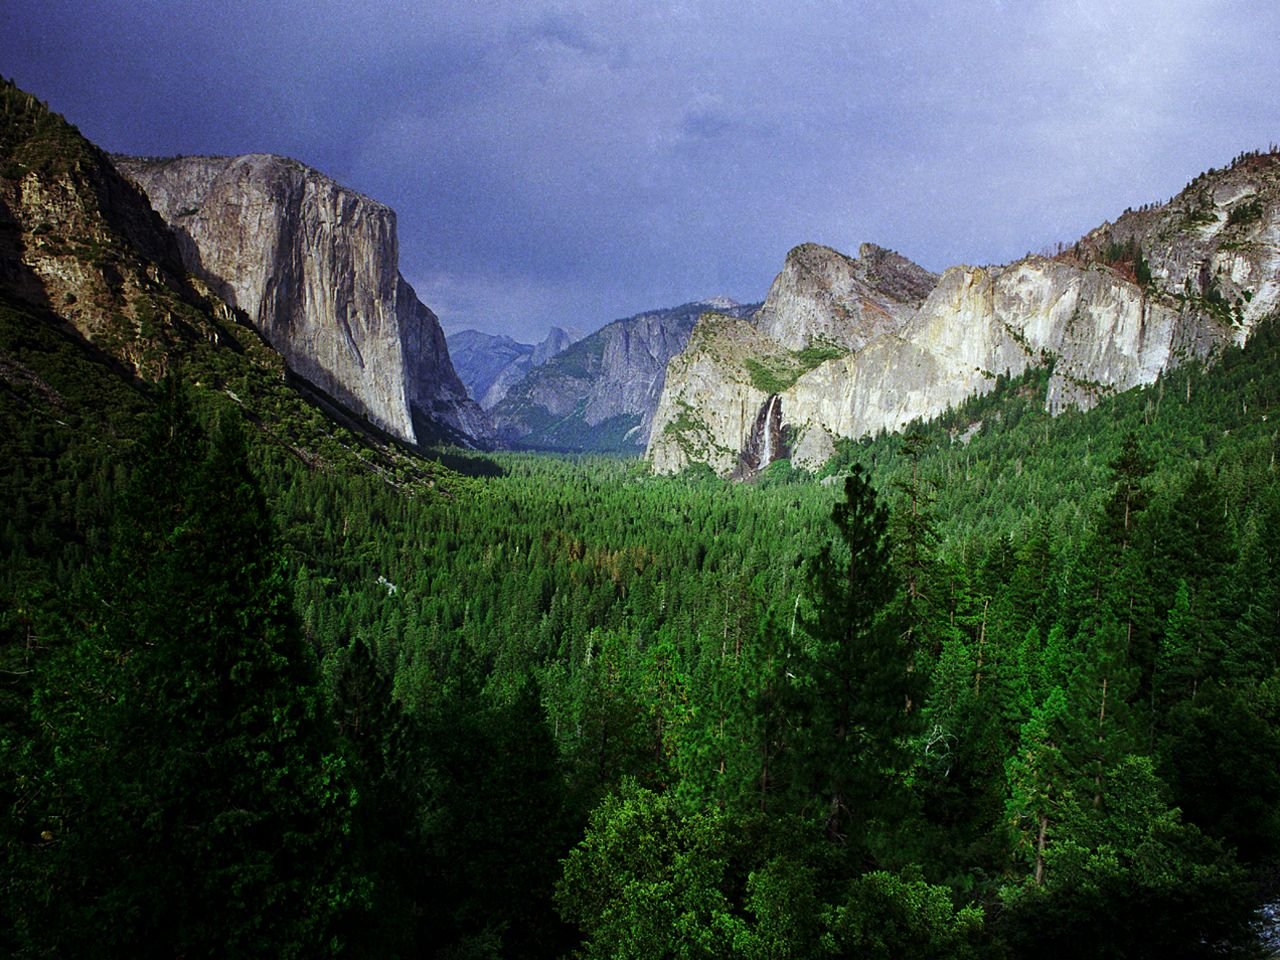 wallpapers nature landscape misc yosemite valley this wallpaper 1280x960